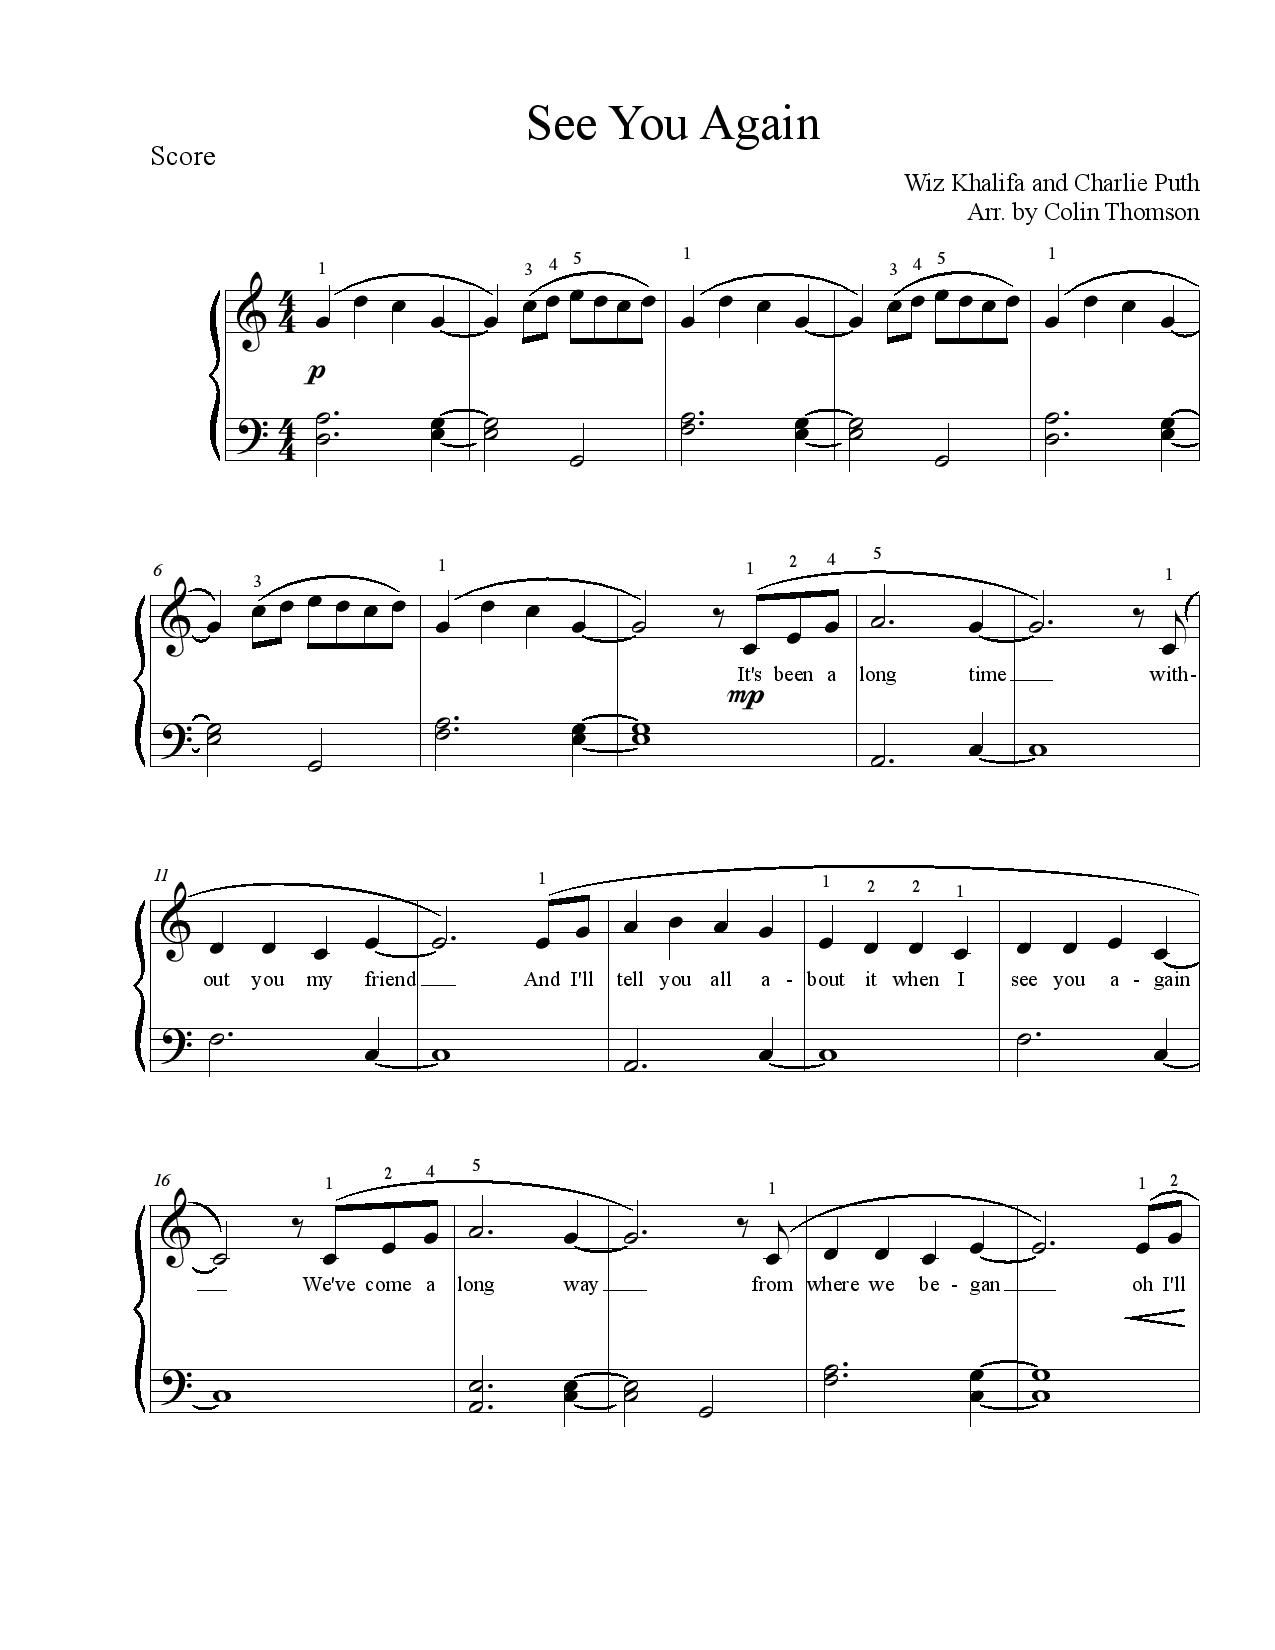 See you again piano notes pdf